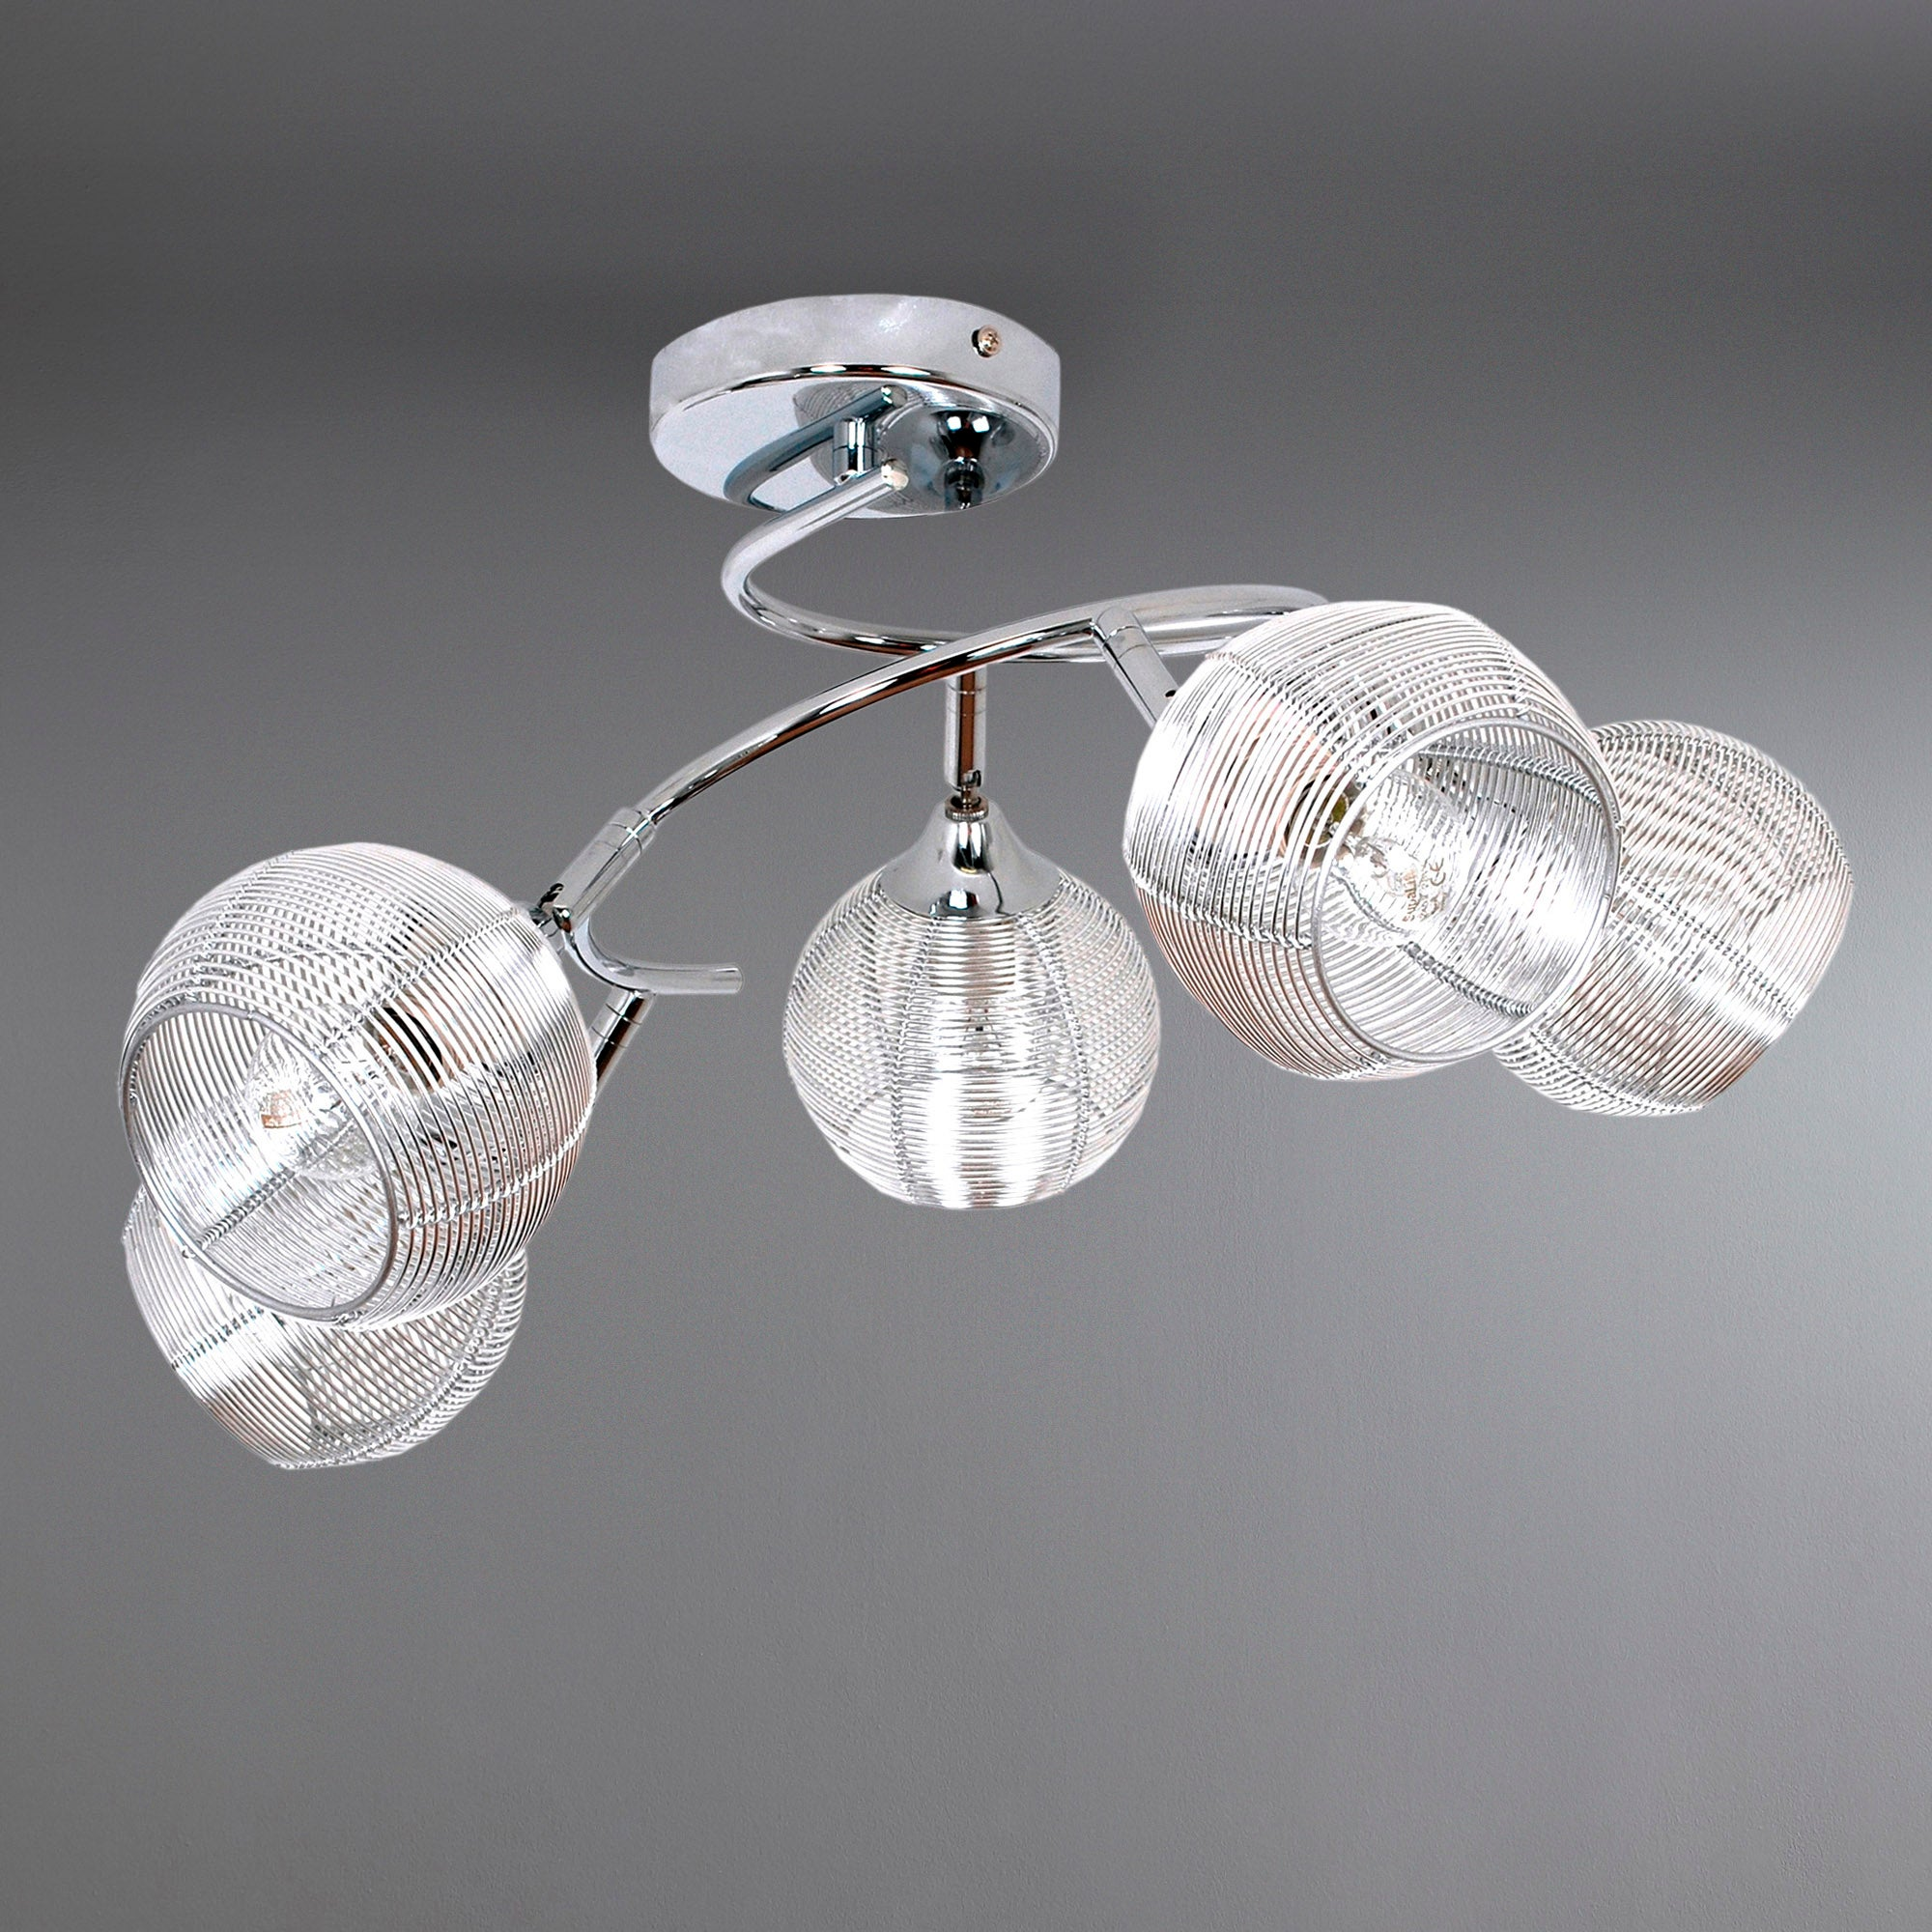 Compare prices lighting products dunelm on costcrawler image for frankie 5 light ceiling fitting chrome at dunelm mozeypictures Gallery